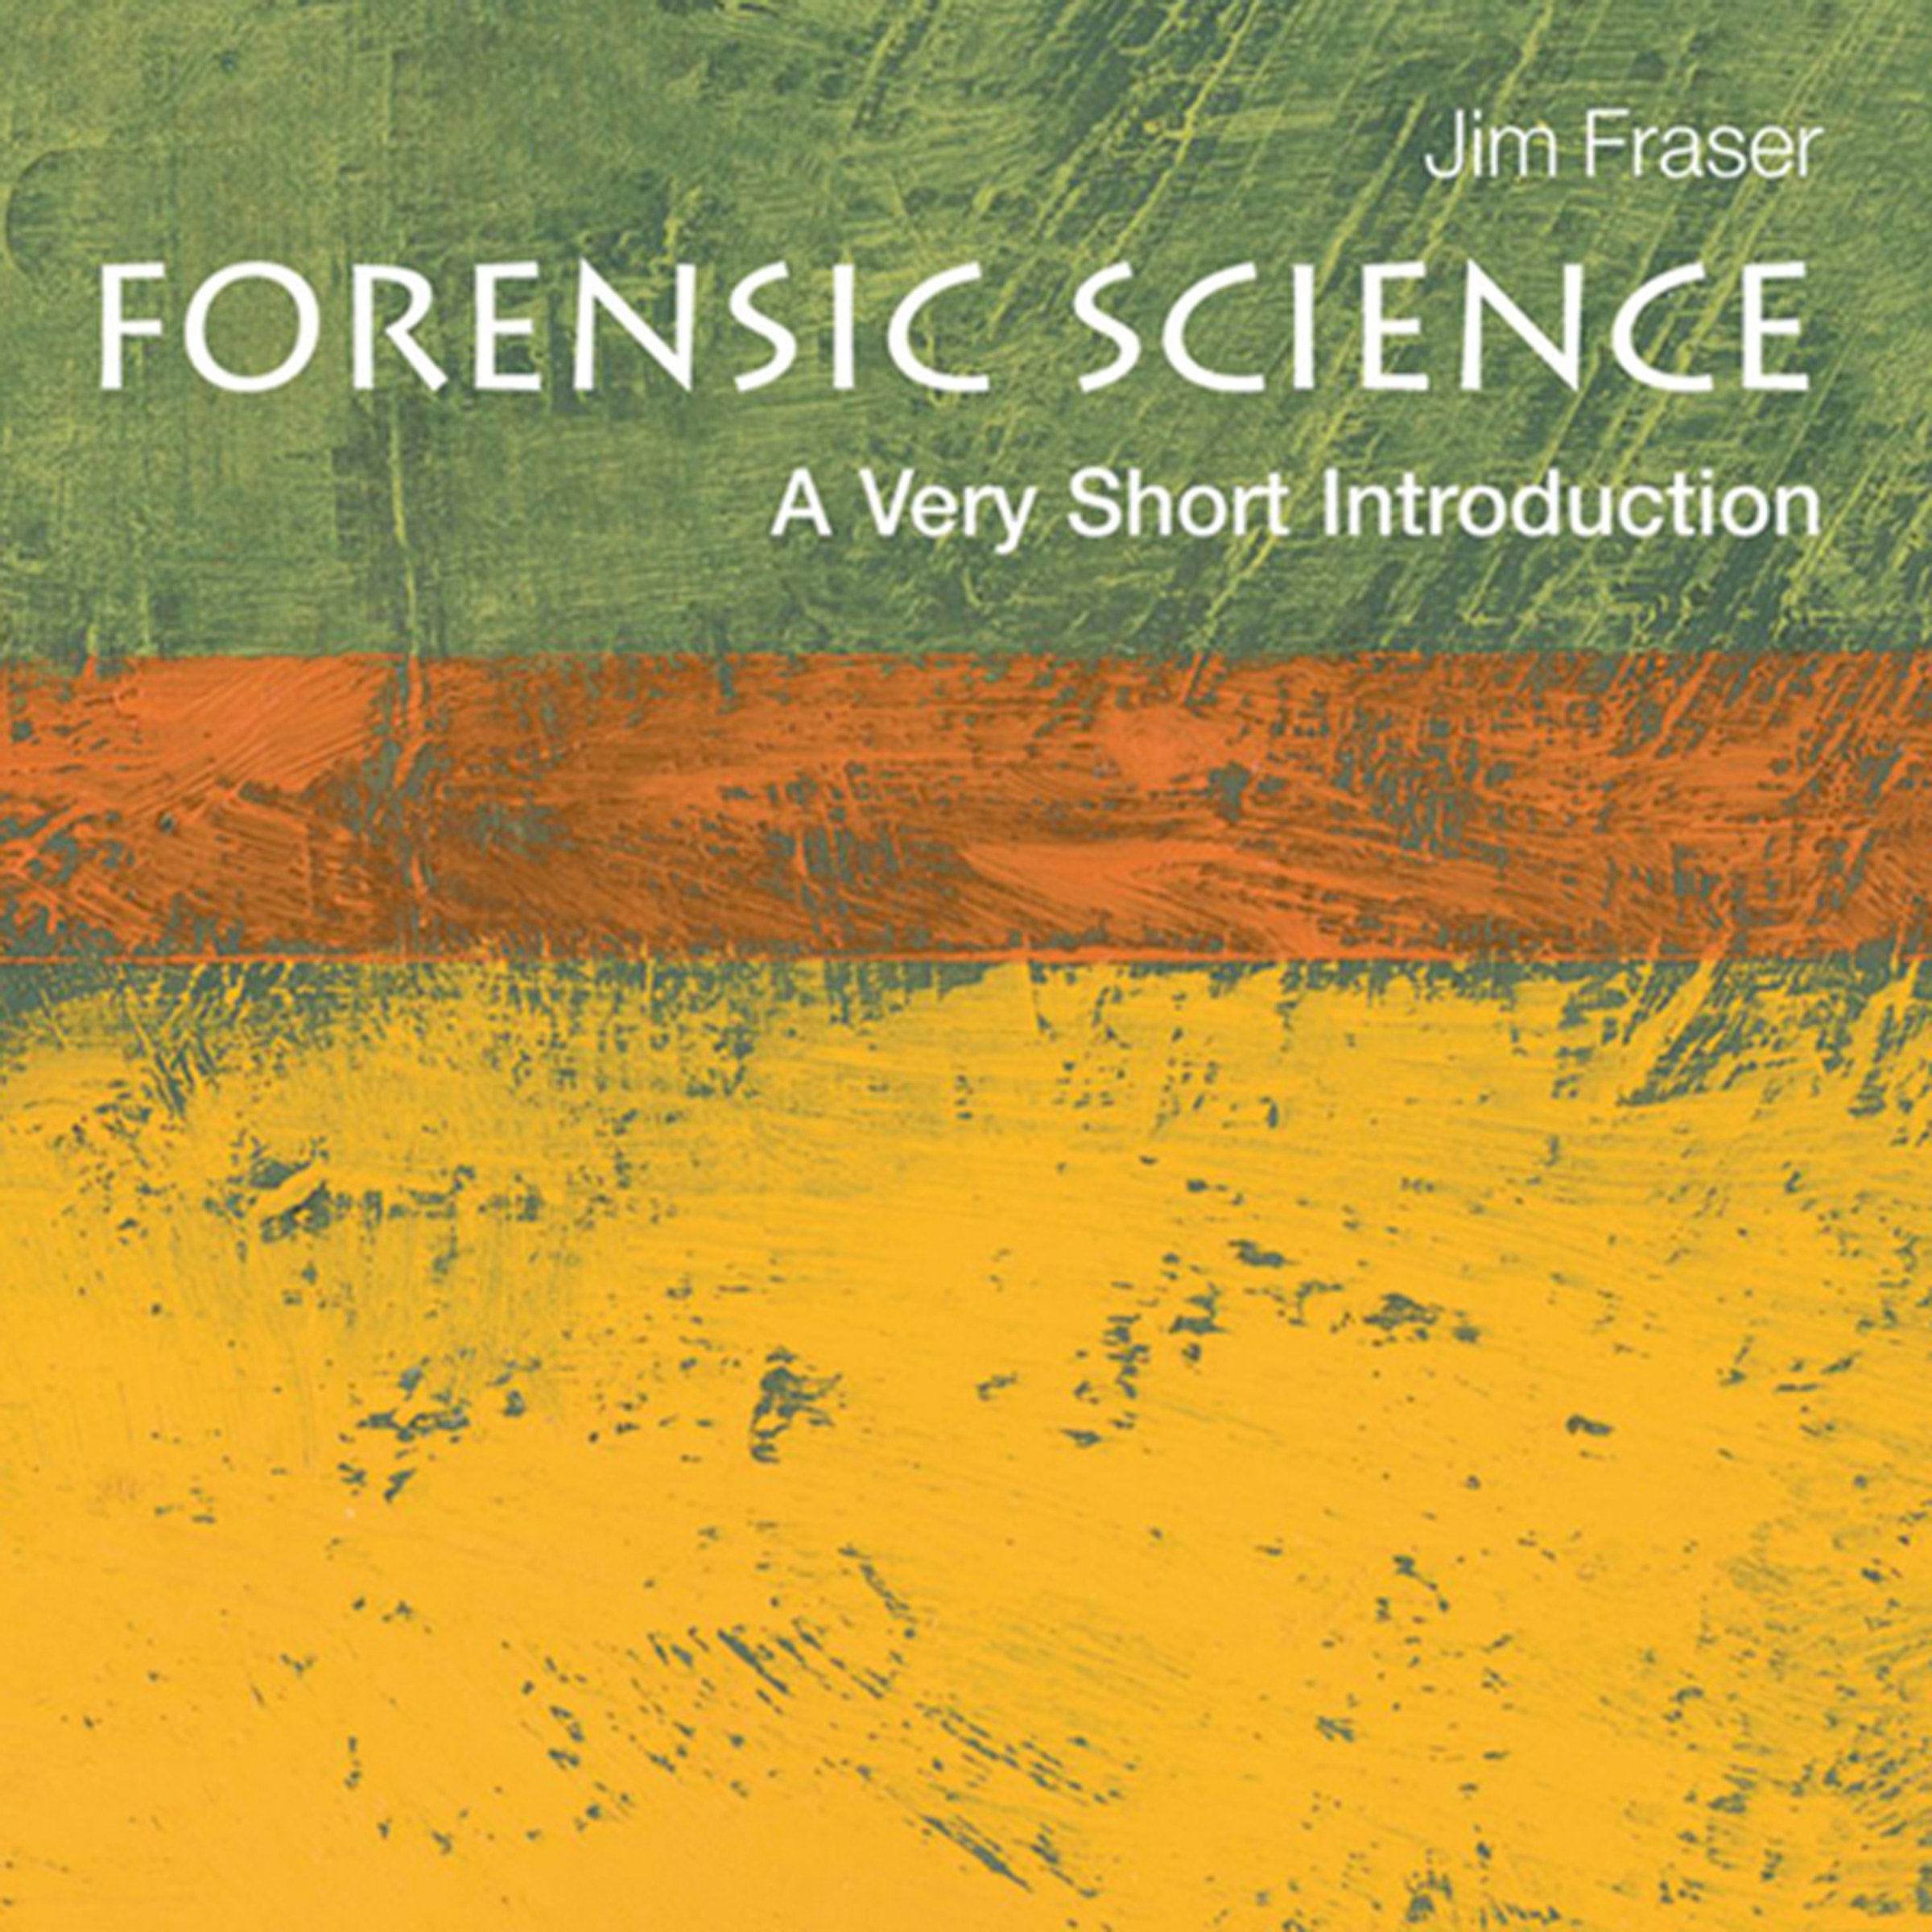 Forensic Science: A Very Short Introduction